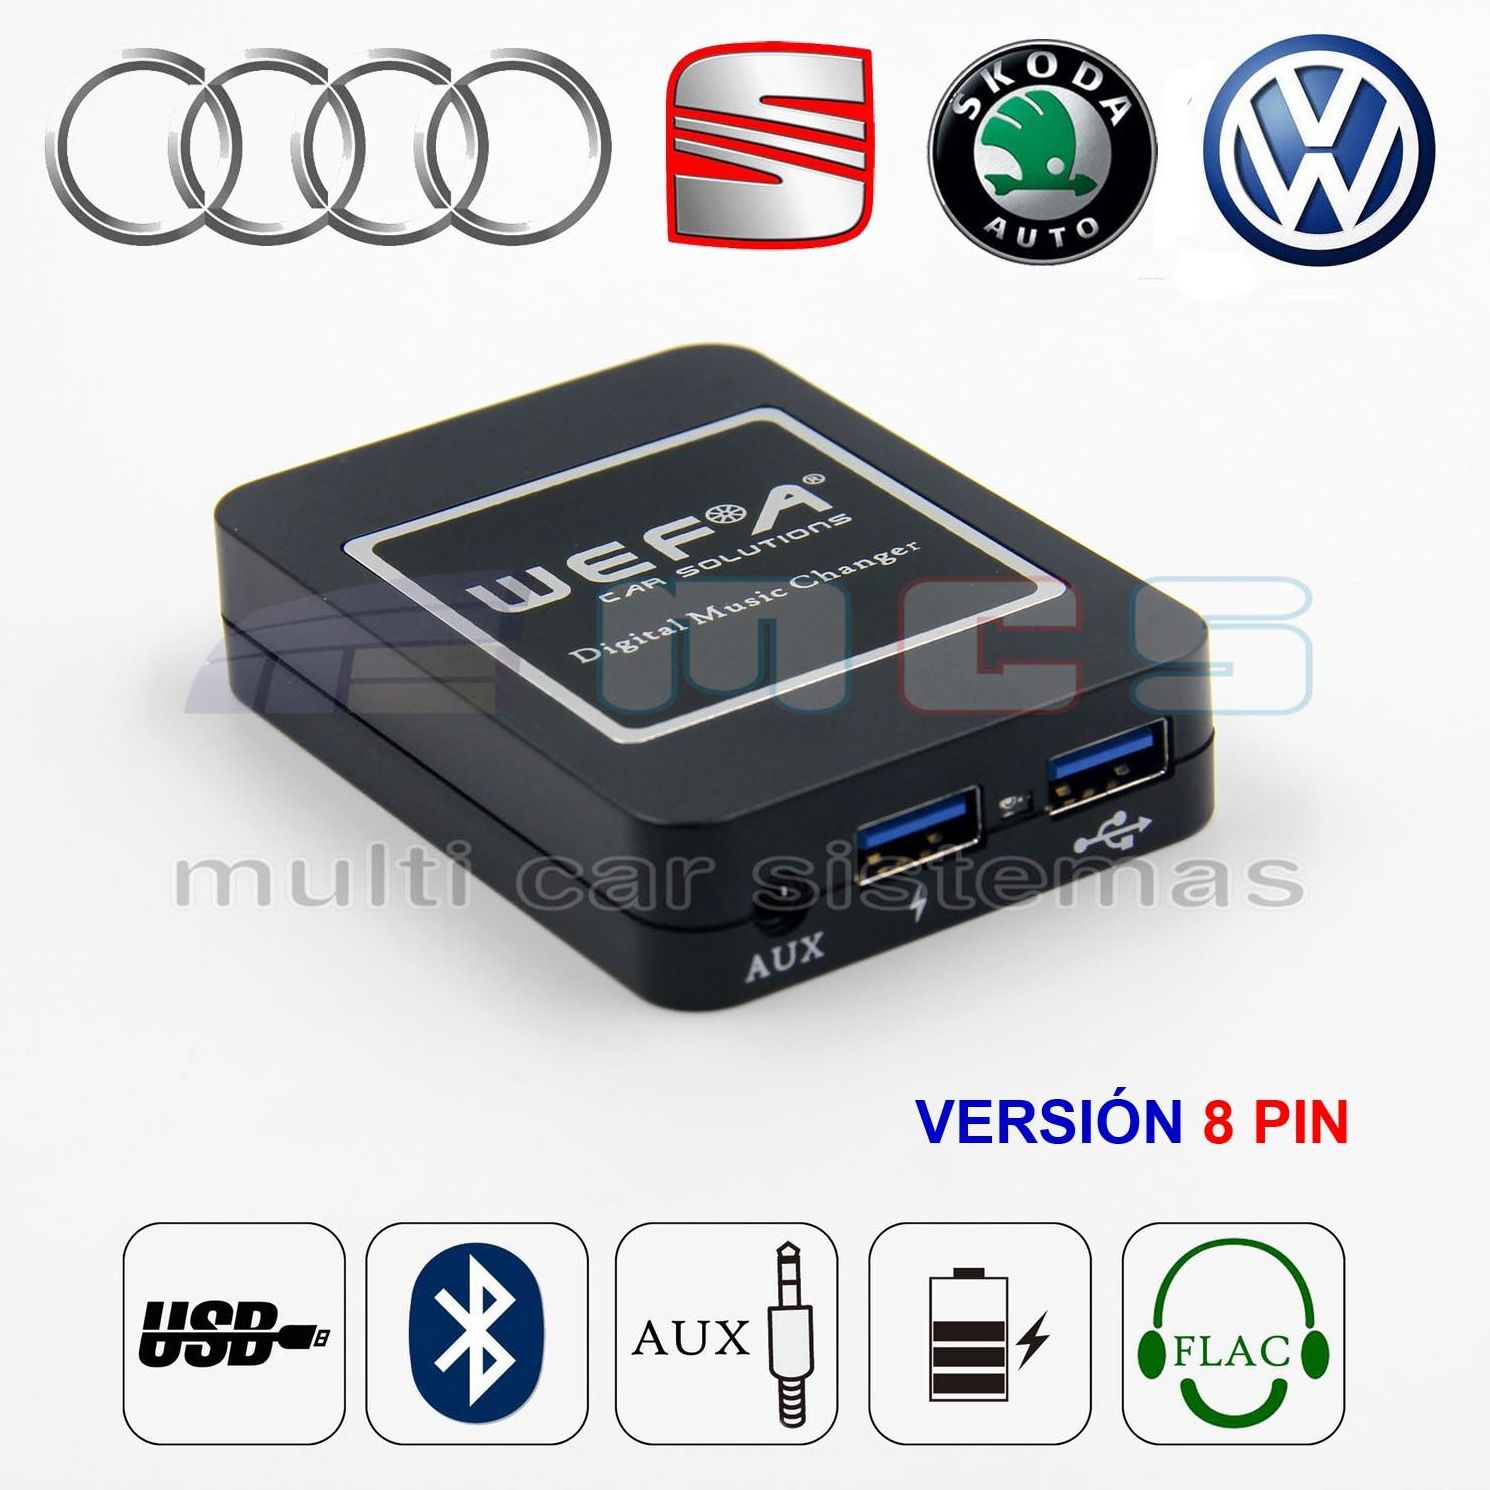 WEFATECH DMC DIGITAL MUSIC CHANGER VW AUDI SEAT SKODA  8 PIN